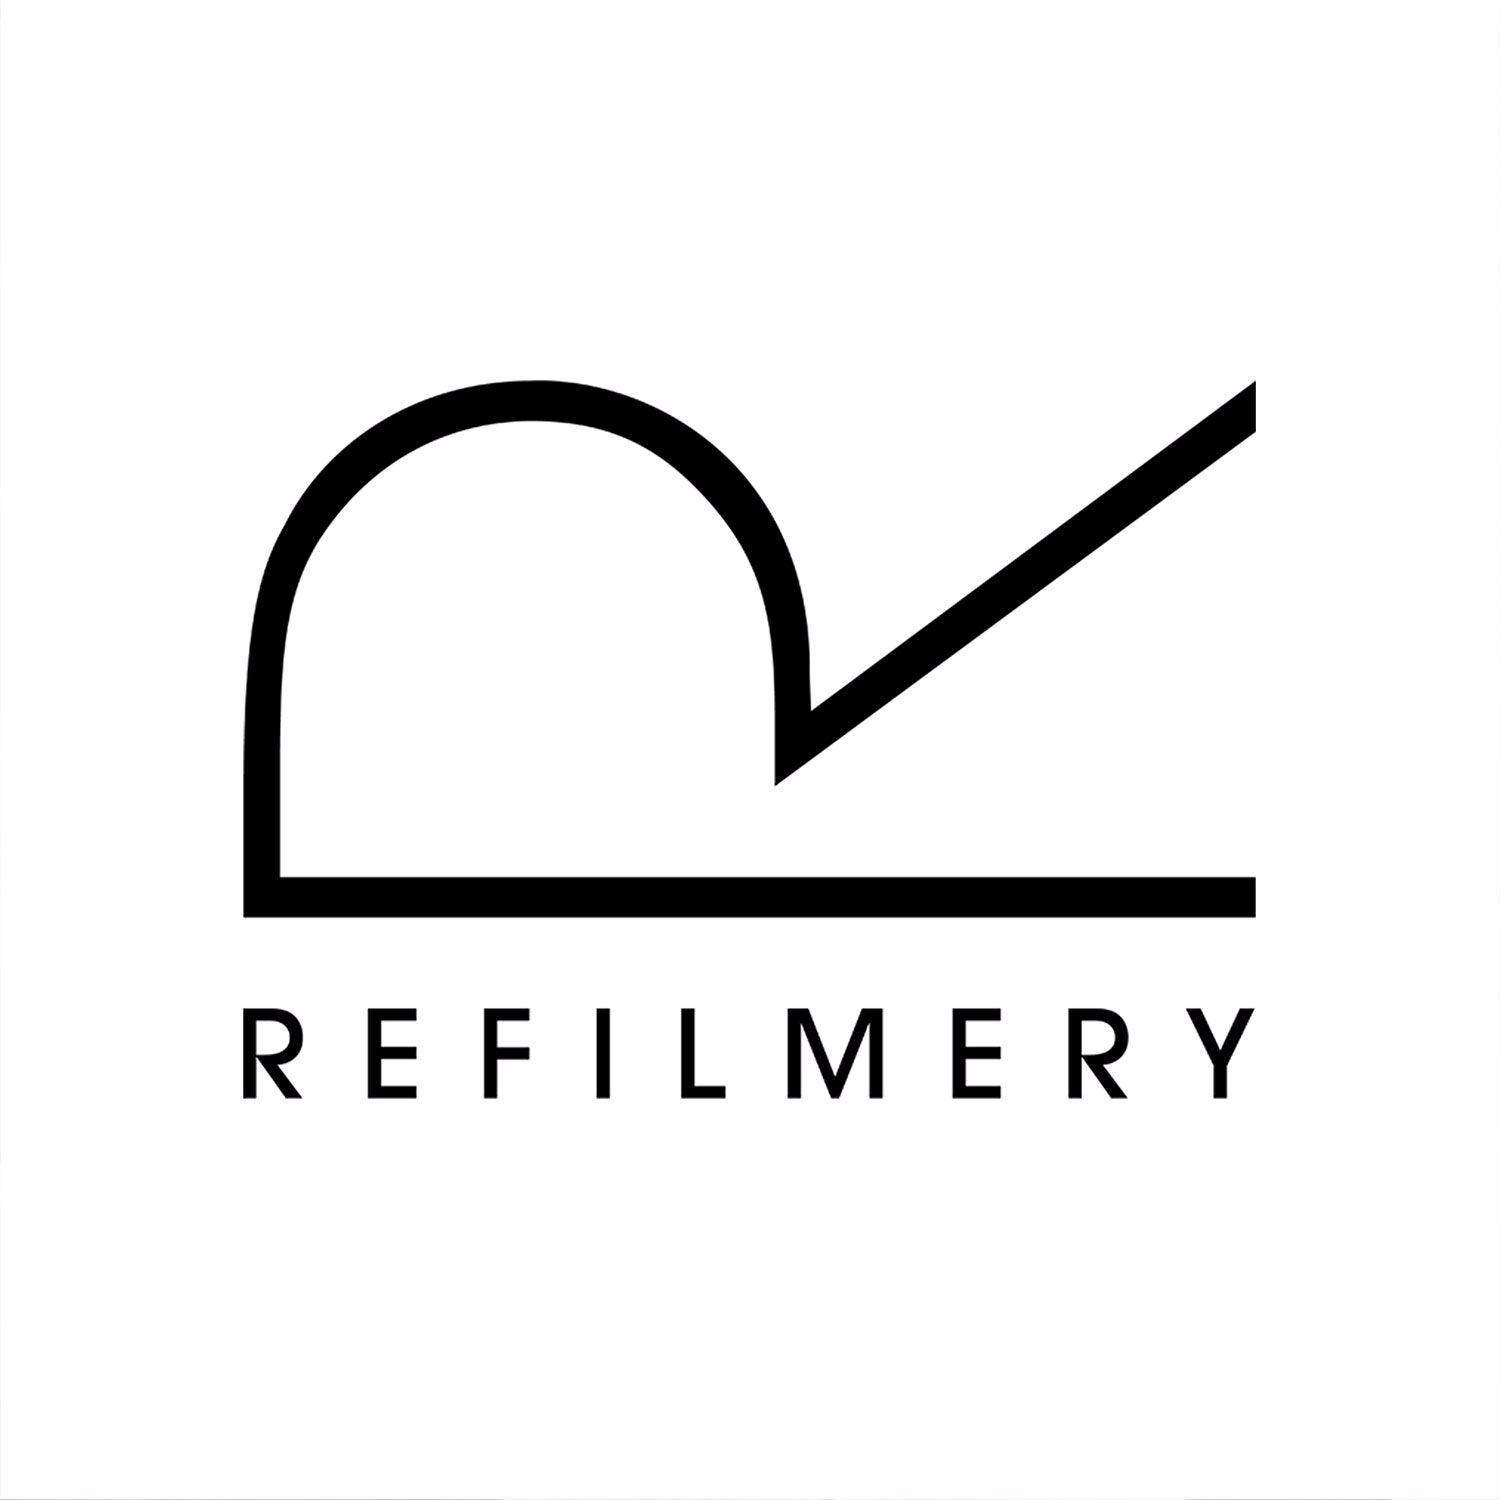 Refilmery Series | Creative Leaders of Films, Brands, and Video